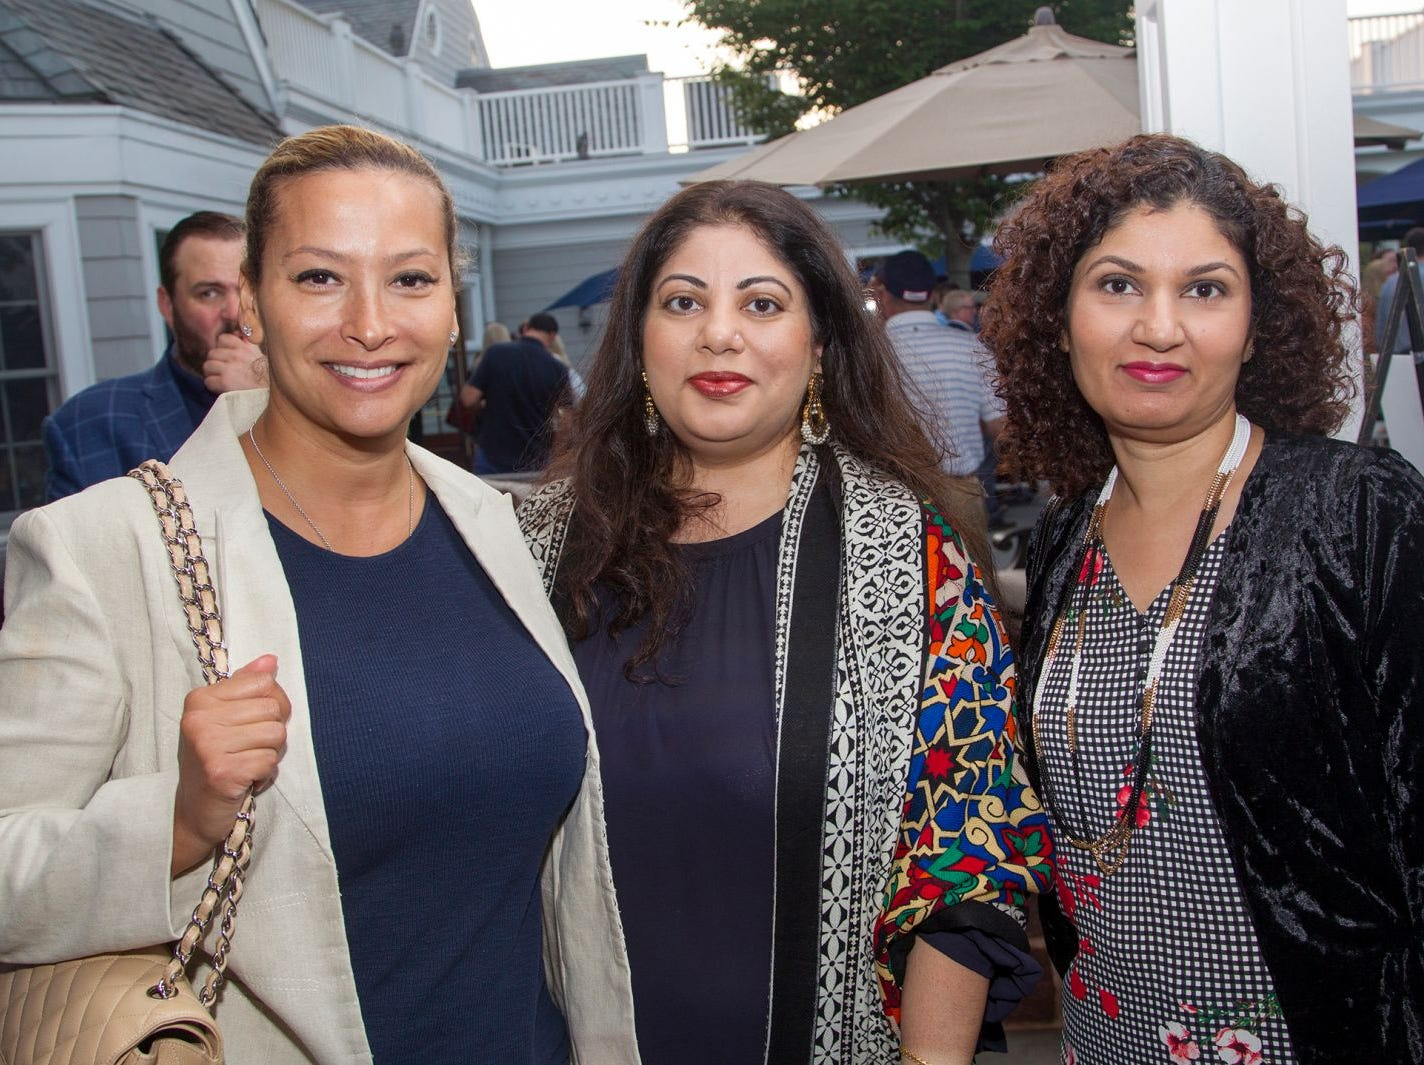 Allison Zayas, Nadia Matin, Kathleen Wiltan. Institute for Educational Achievement held its 23rd annual Golf Classic at Hackensack Golf Club in Oradell. 10/01/2018